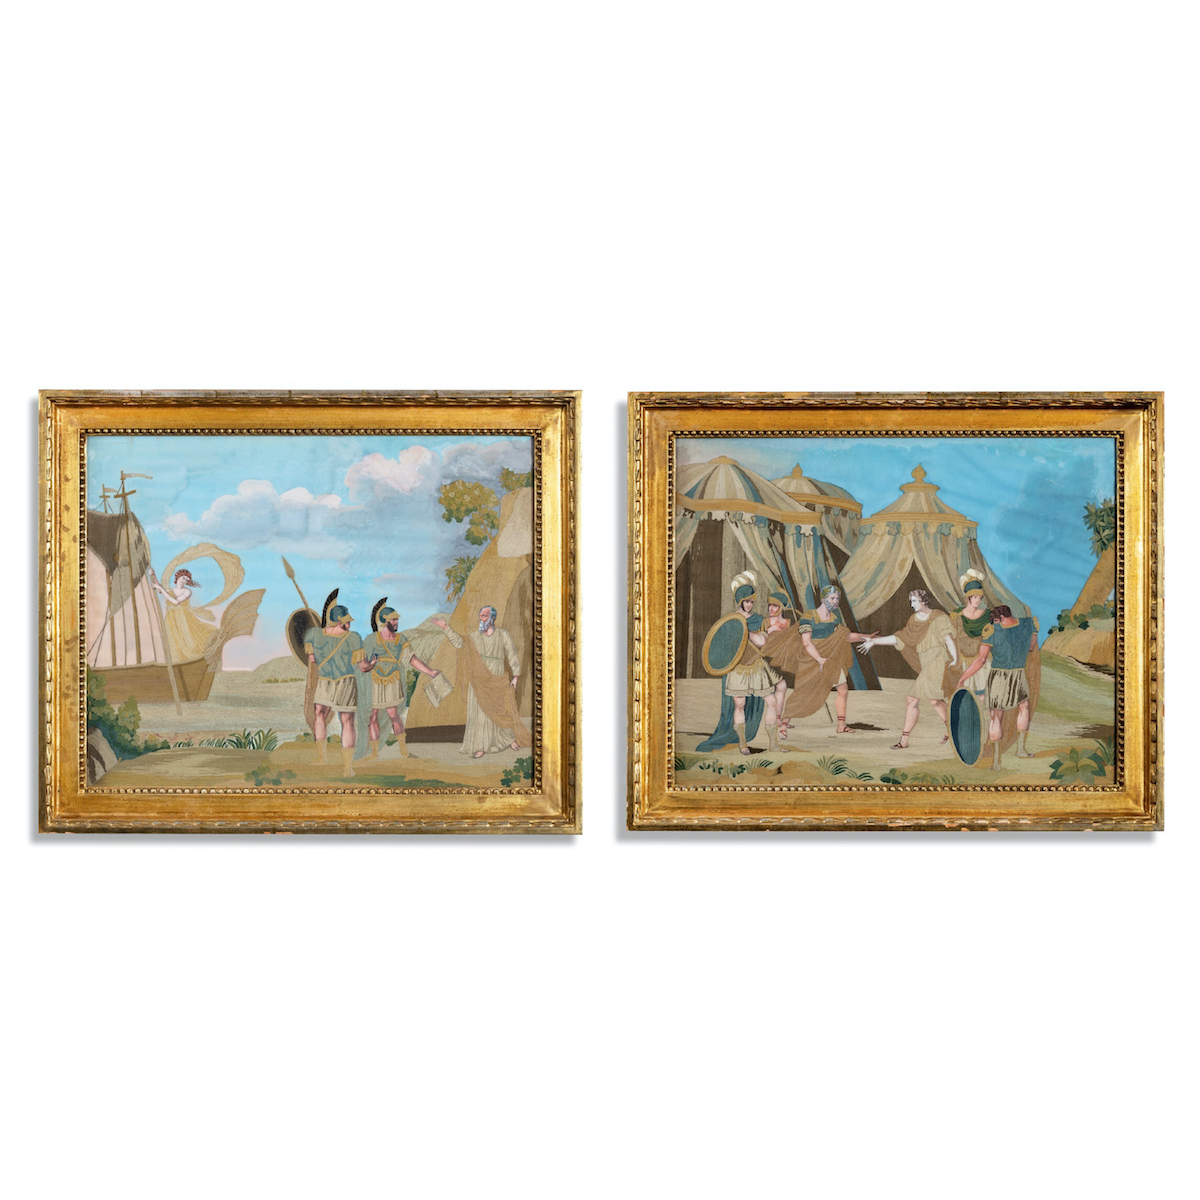 An unusual pair of Italian silk embroidery and gouache painted pictures